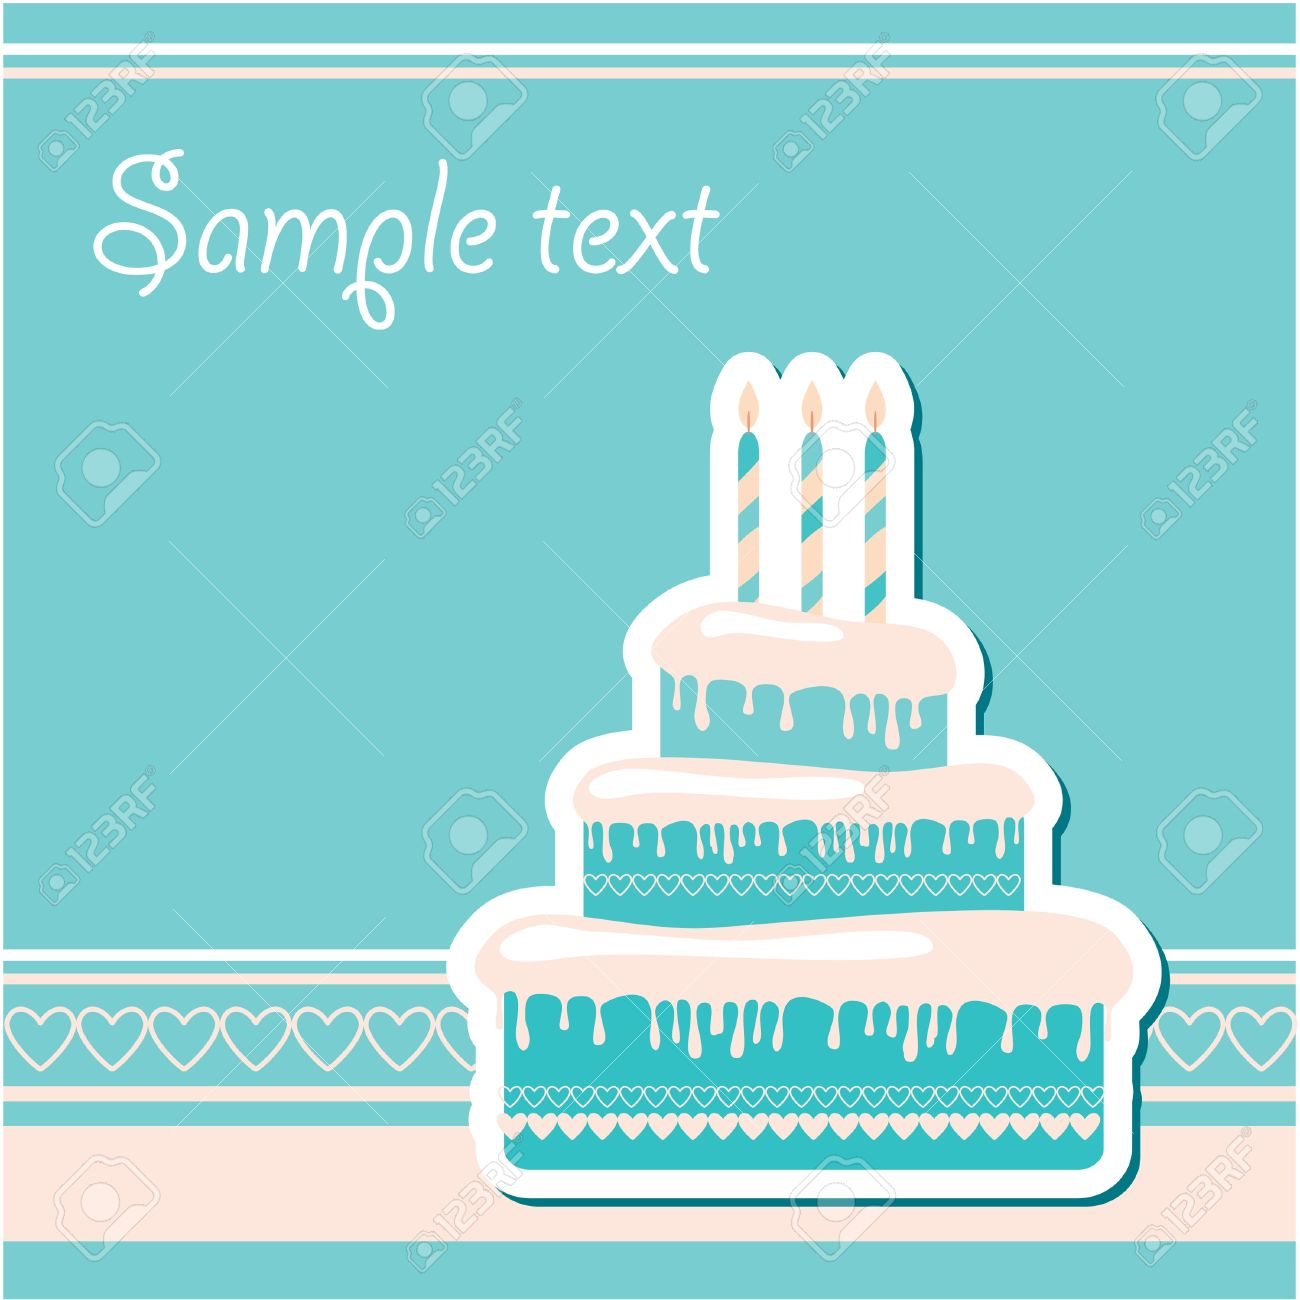 free sample birthday wishes ; 9717352-template-frame-for-the-birthday-greetings-insert-your-text-